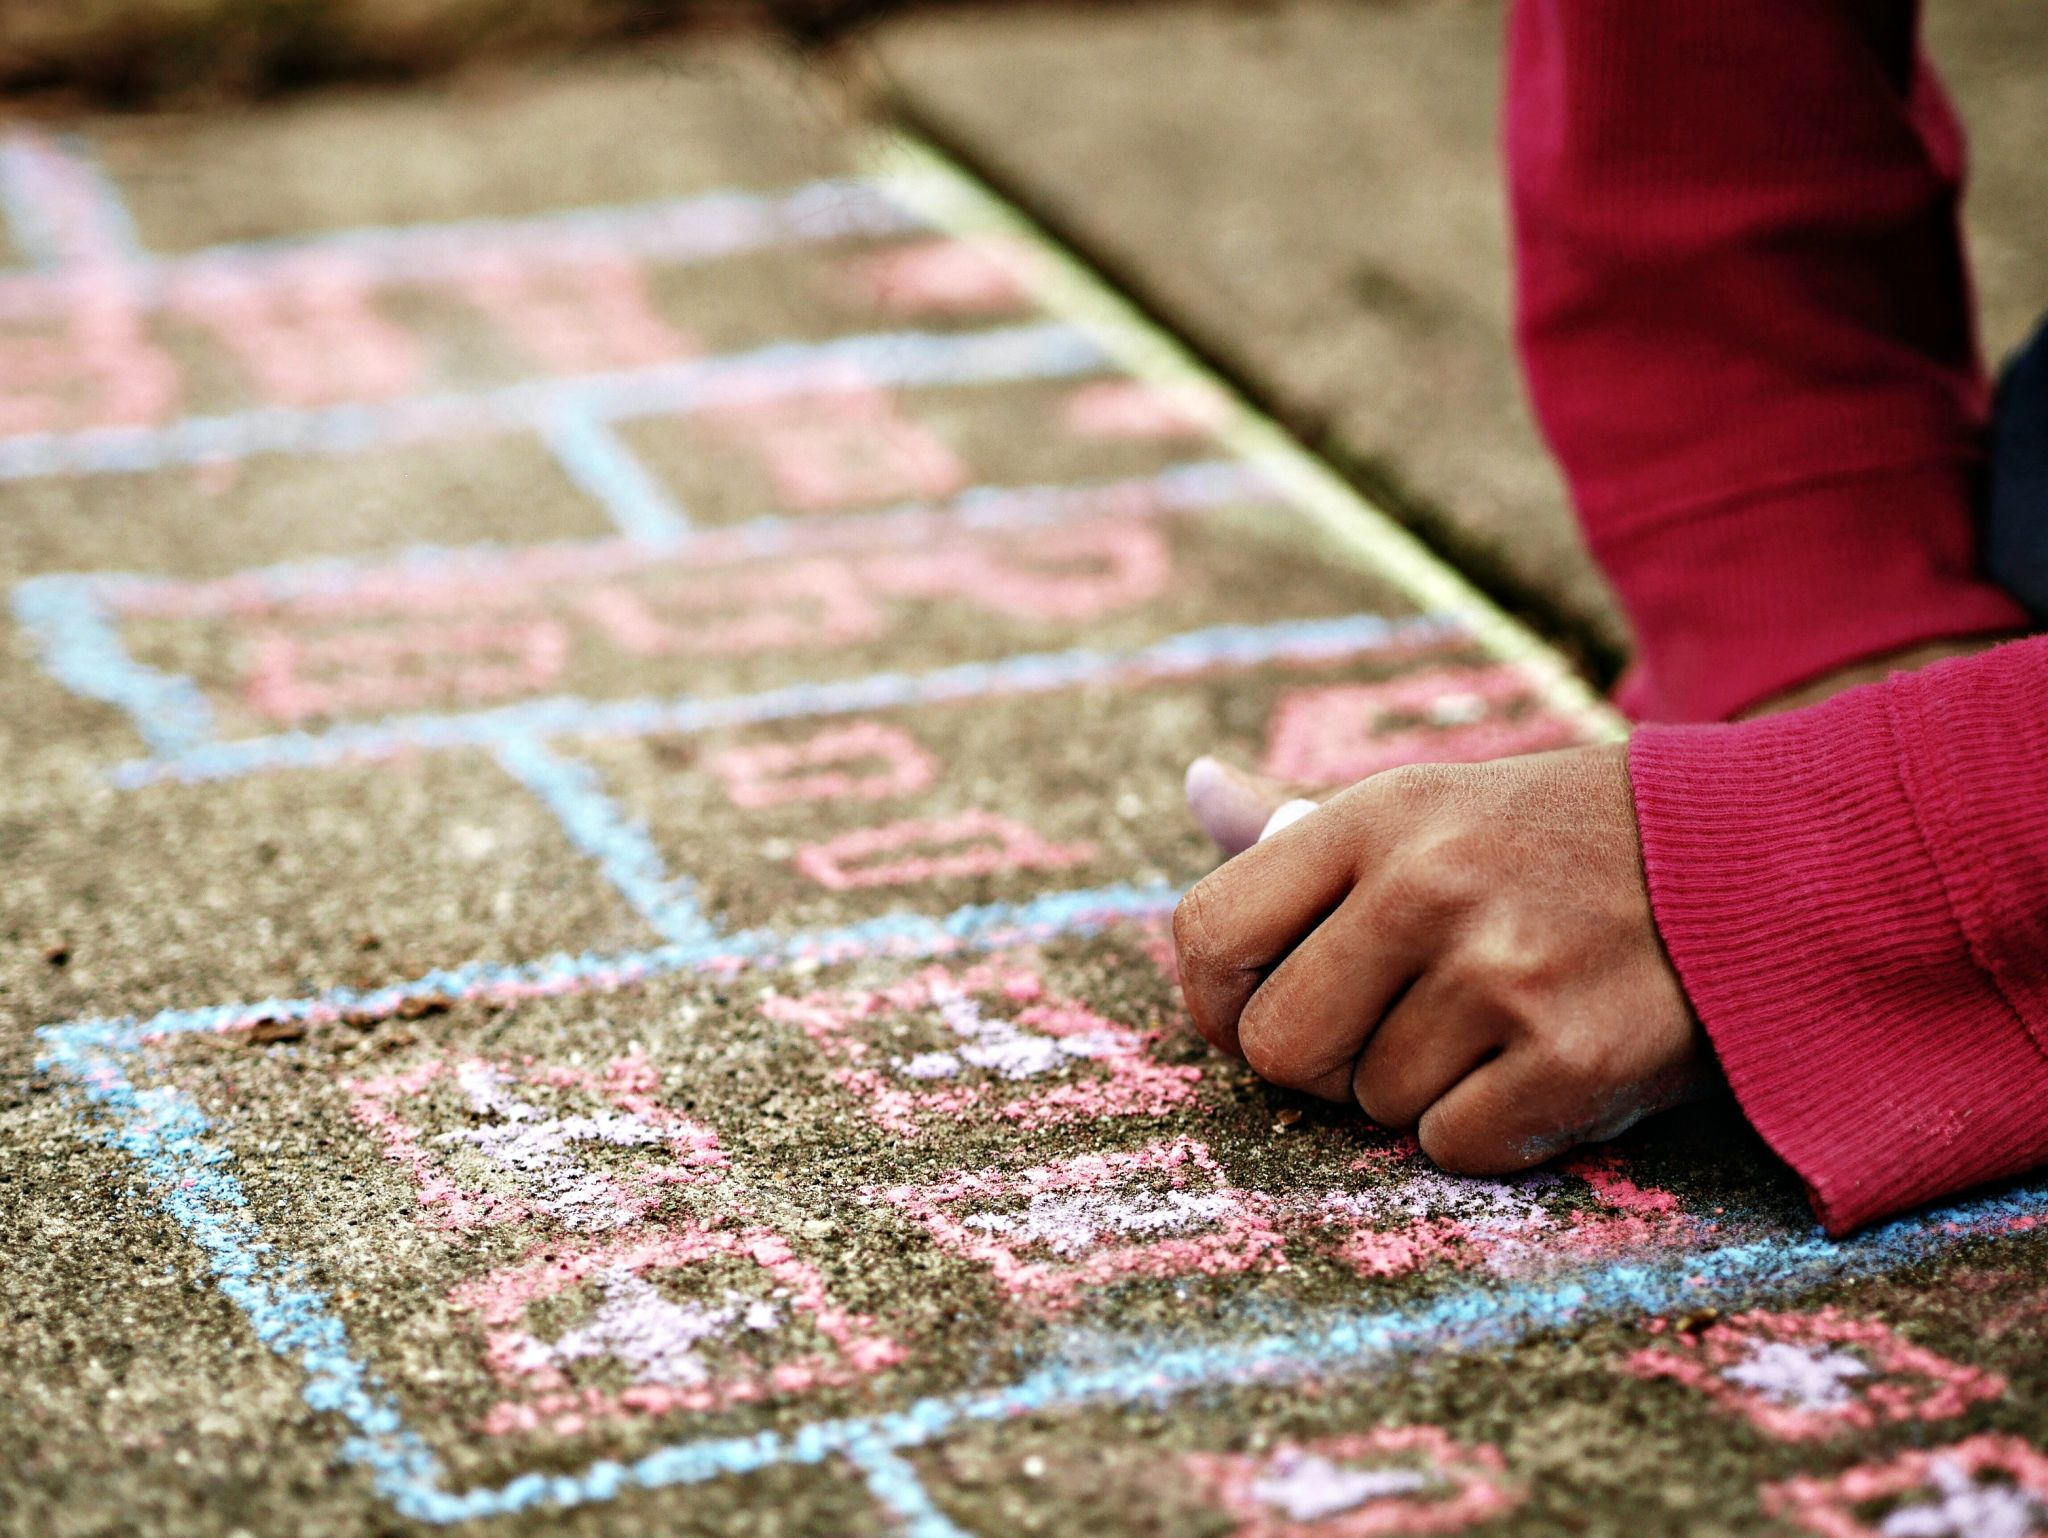 Half term fun could be something simple like chalking on your driveway